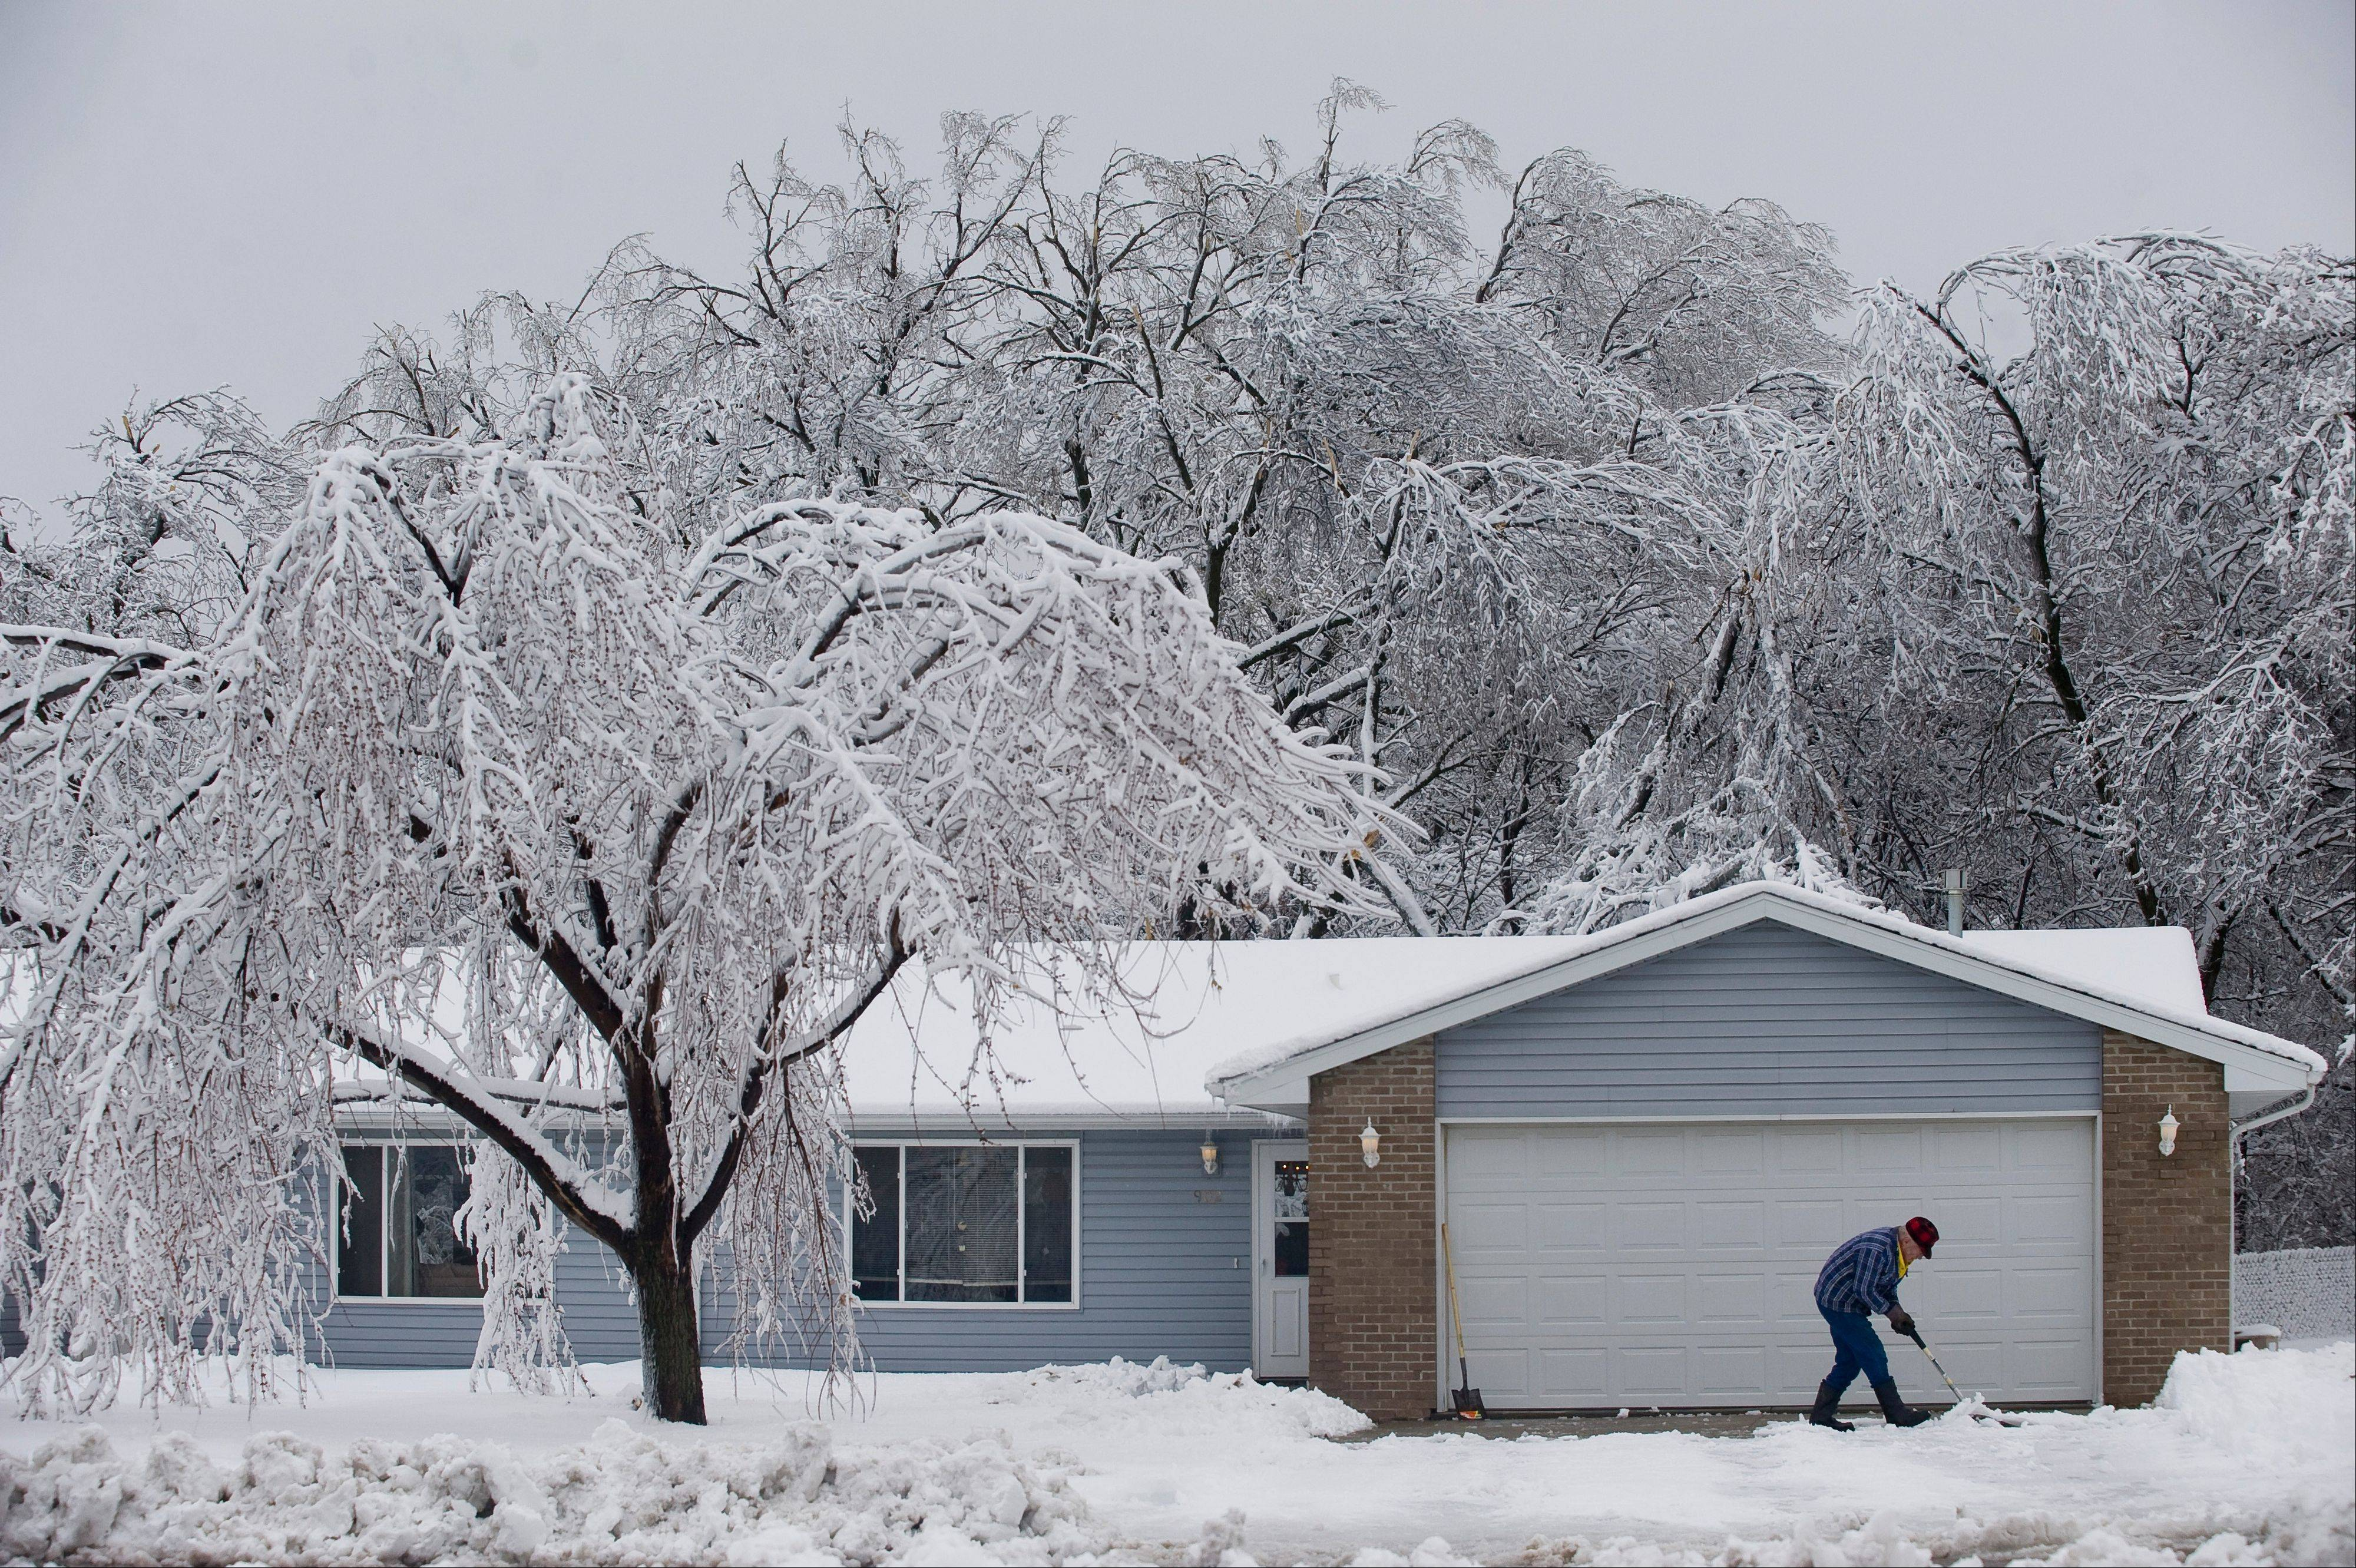 John Deters clears the driveway for his friend, Thursday, April 11, 2013, in Sioux Falls, S.D.